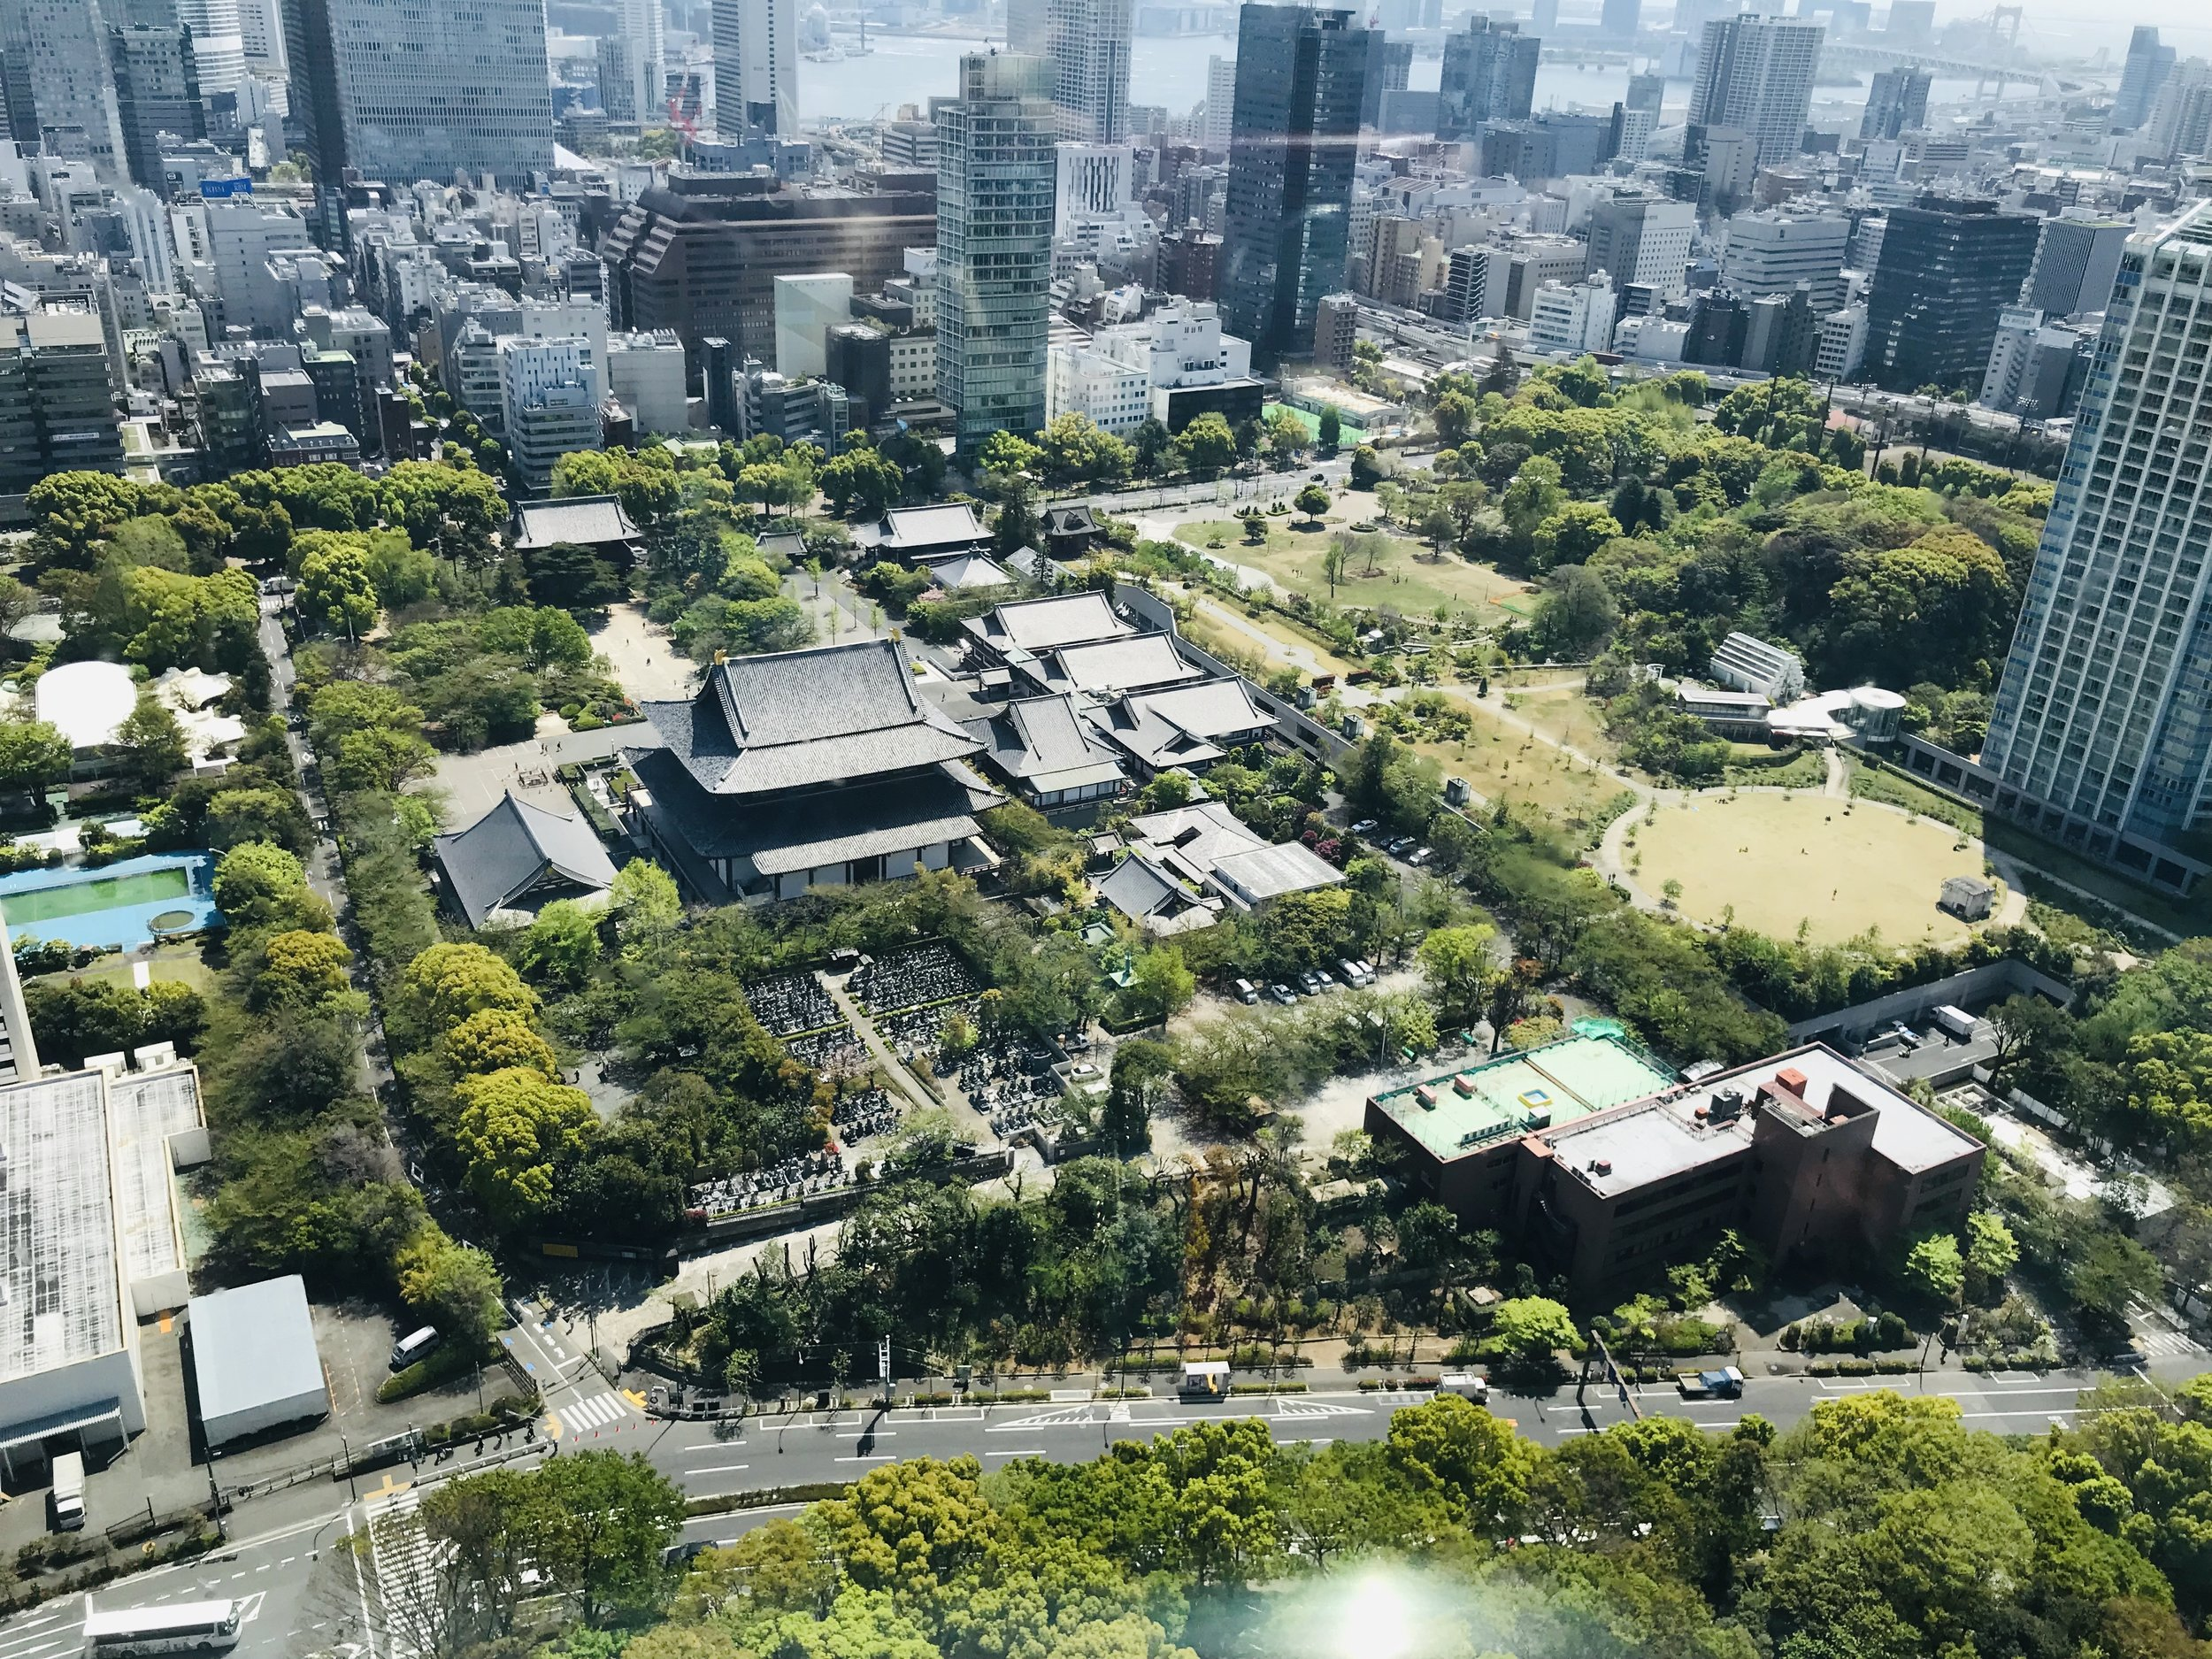 The view from Tokyo Tower